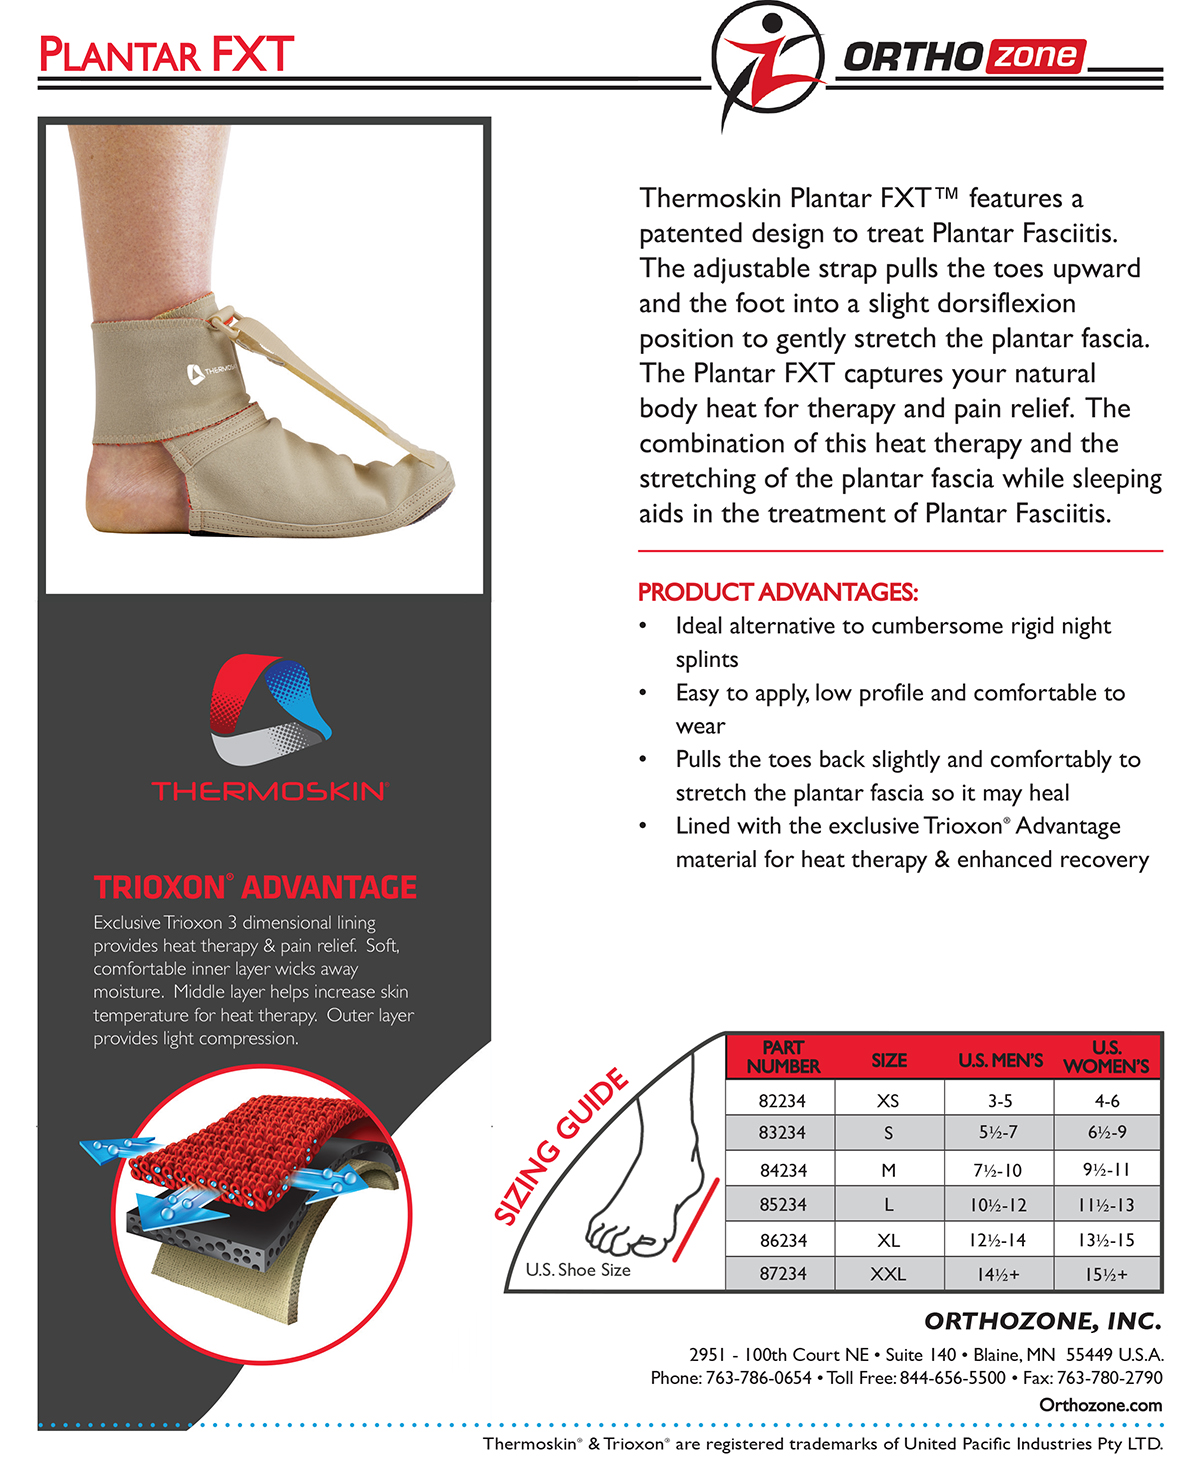 Thermoskin Plantar FXT, Beige. $39.95 alternative product image 1